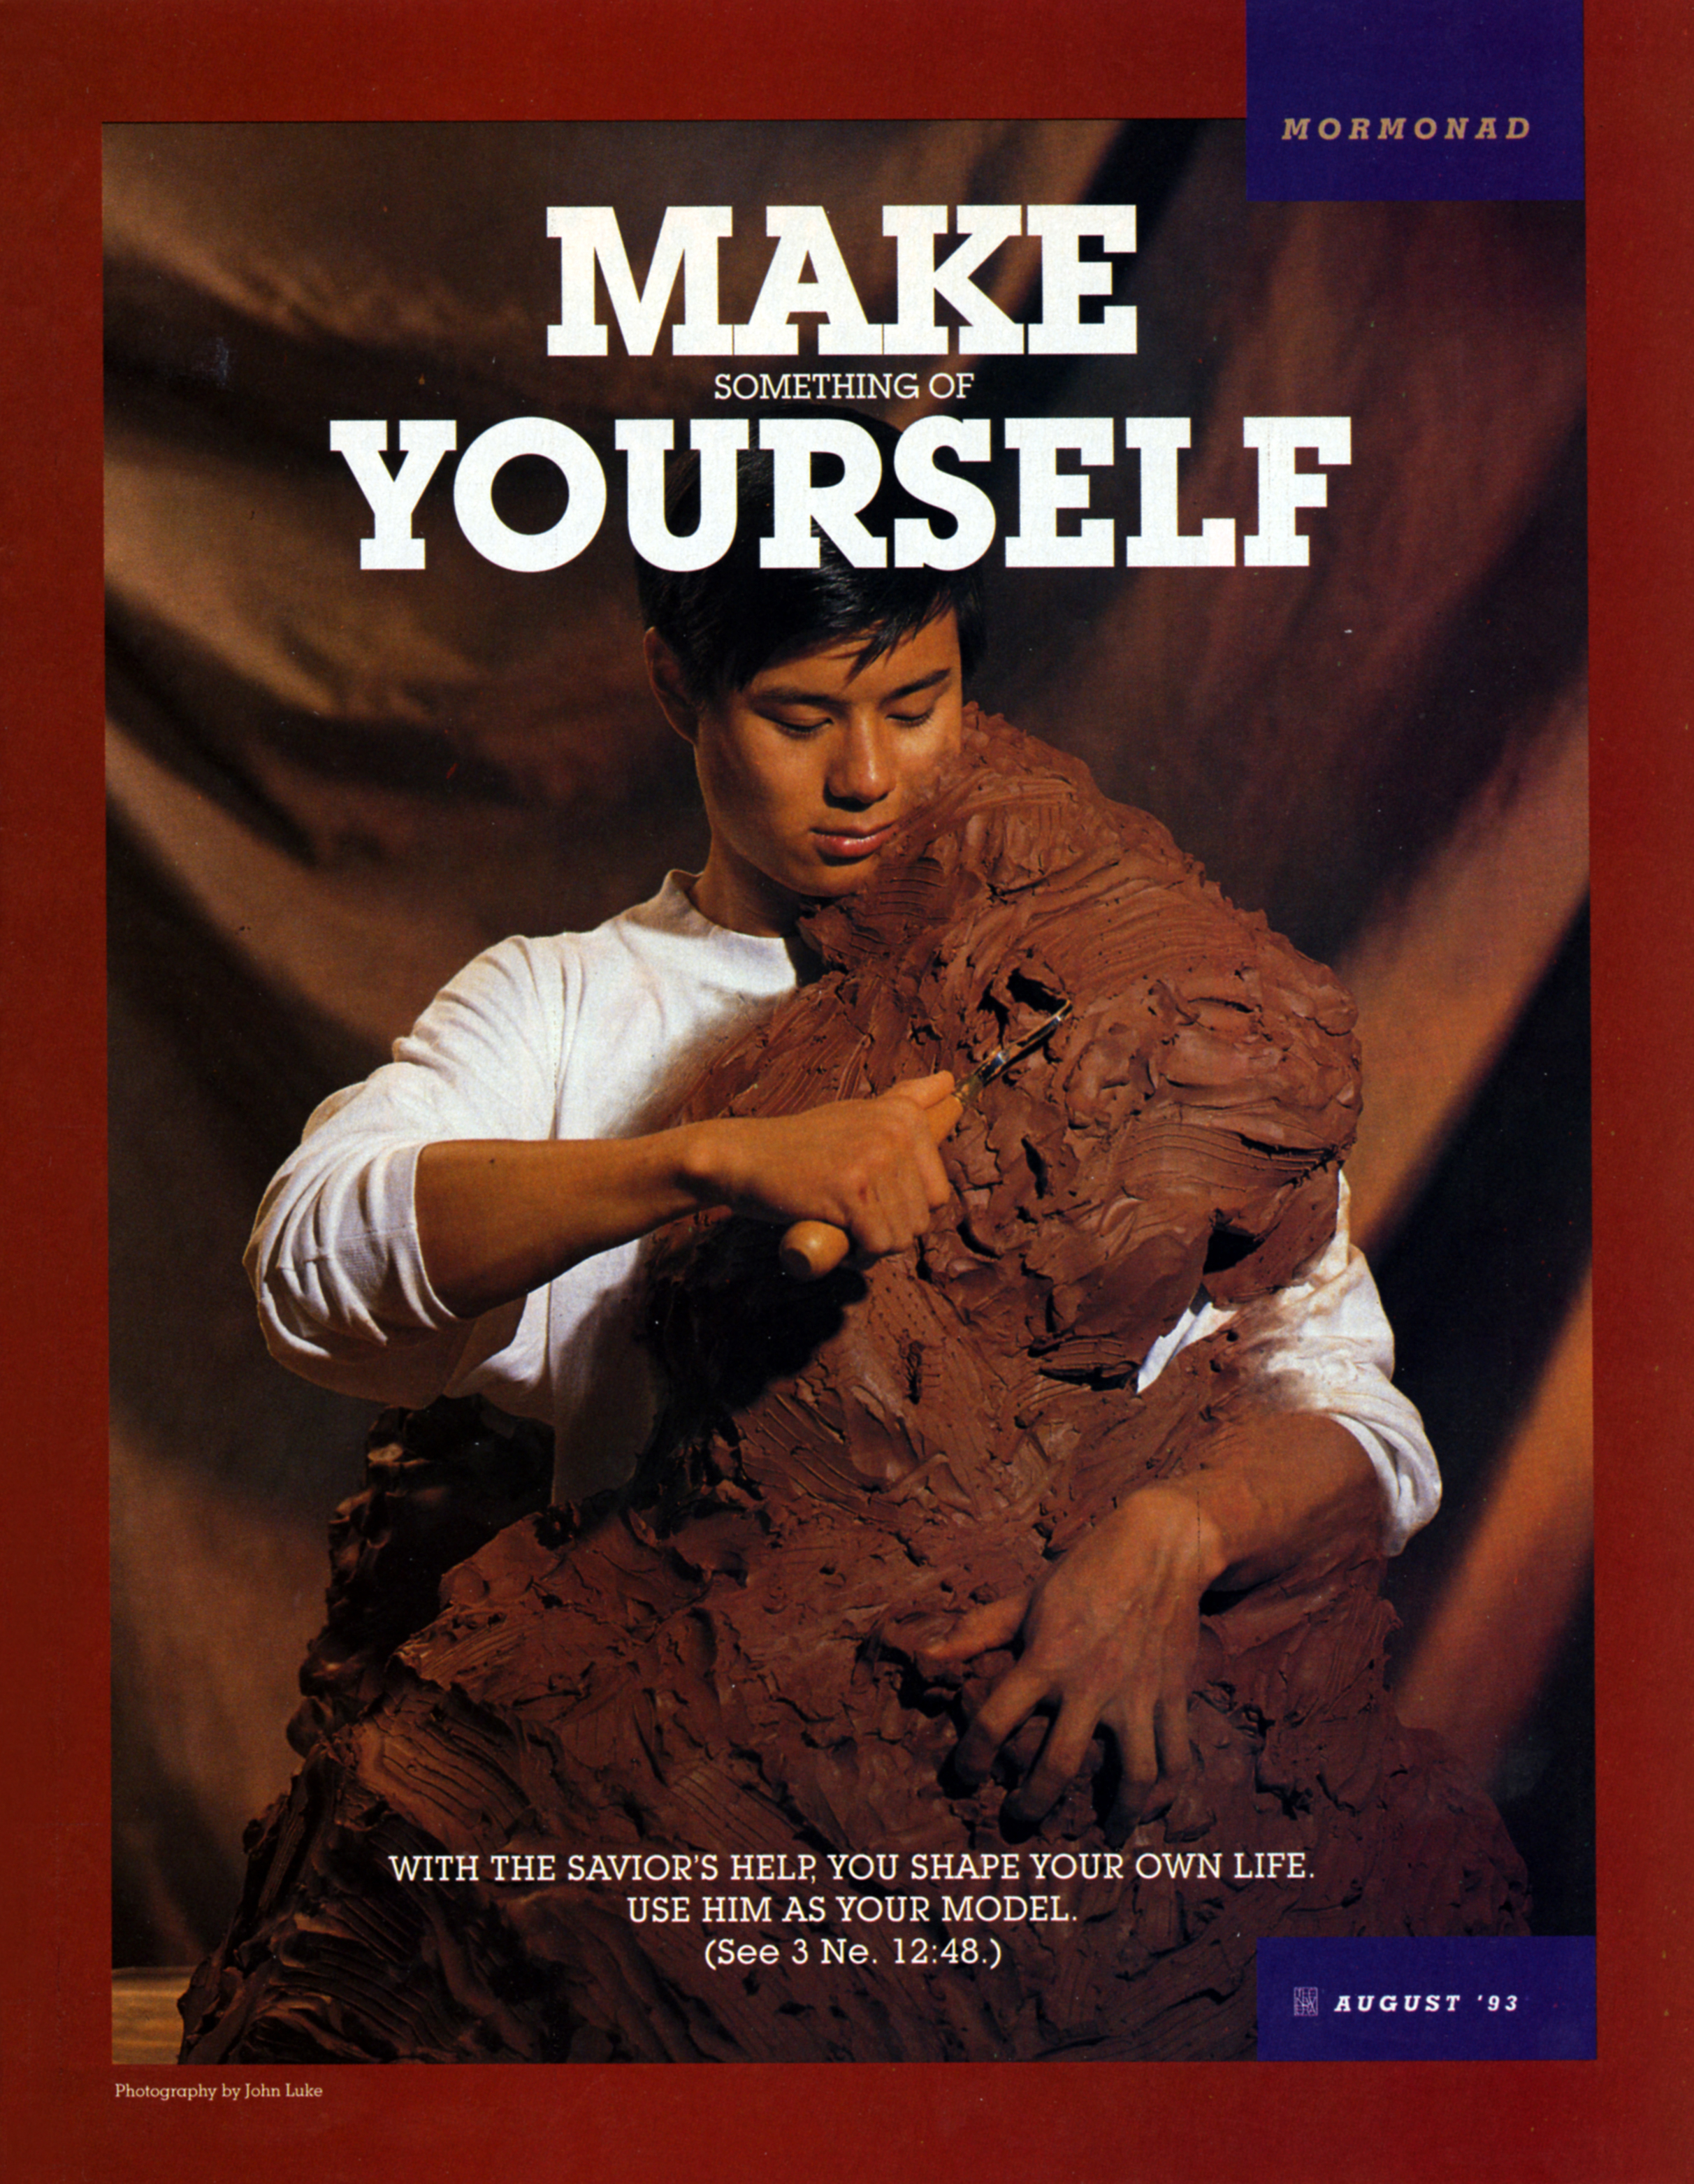 Make Something of Yourself. With the Savior's help, you shape your own life. Use Him as your model. (See 3 Ne. 12:48.) Aug. 1993 © undefined ipCode 1.